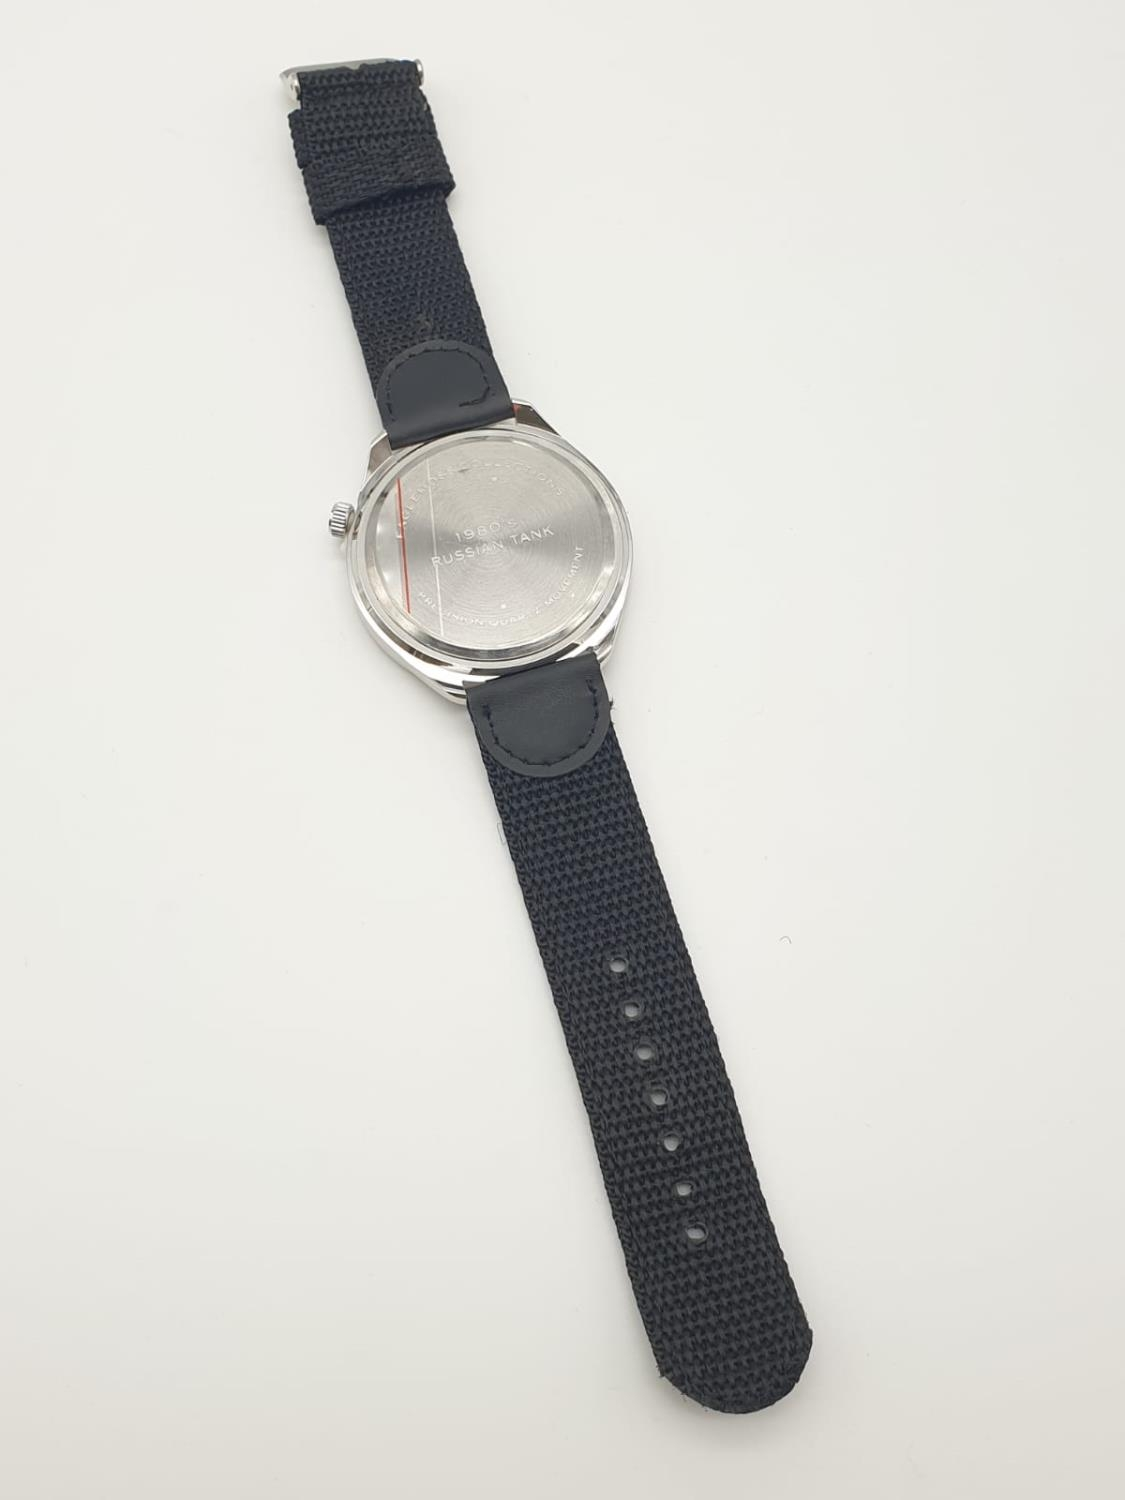 1980'S RUSSIAN TANK WATCH , BOXED AS NEW - Image 5 of 6